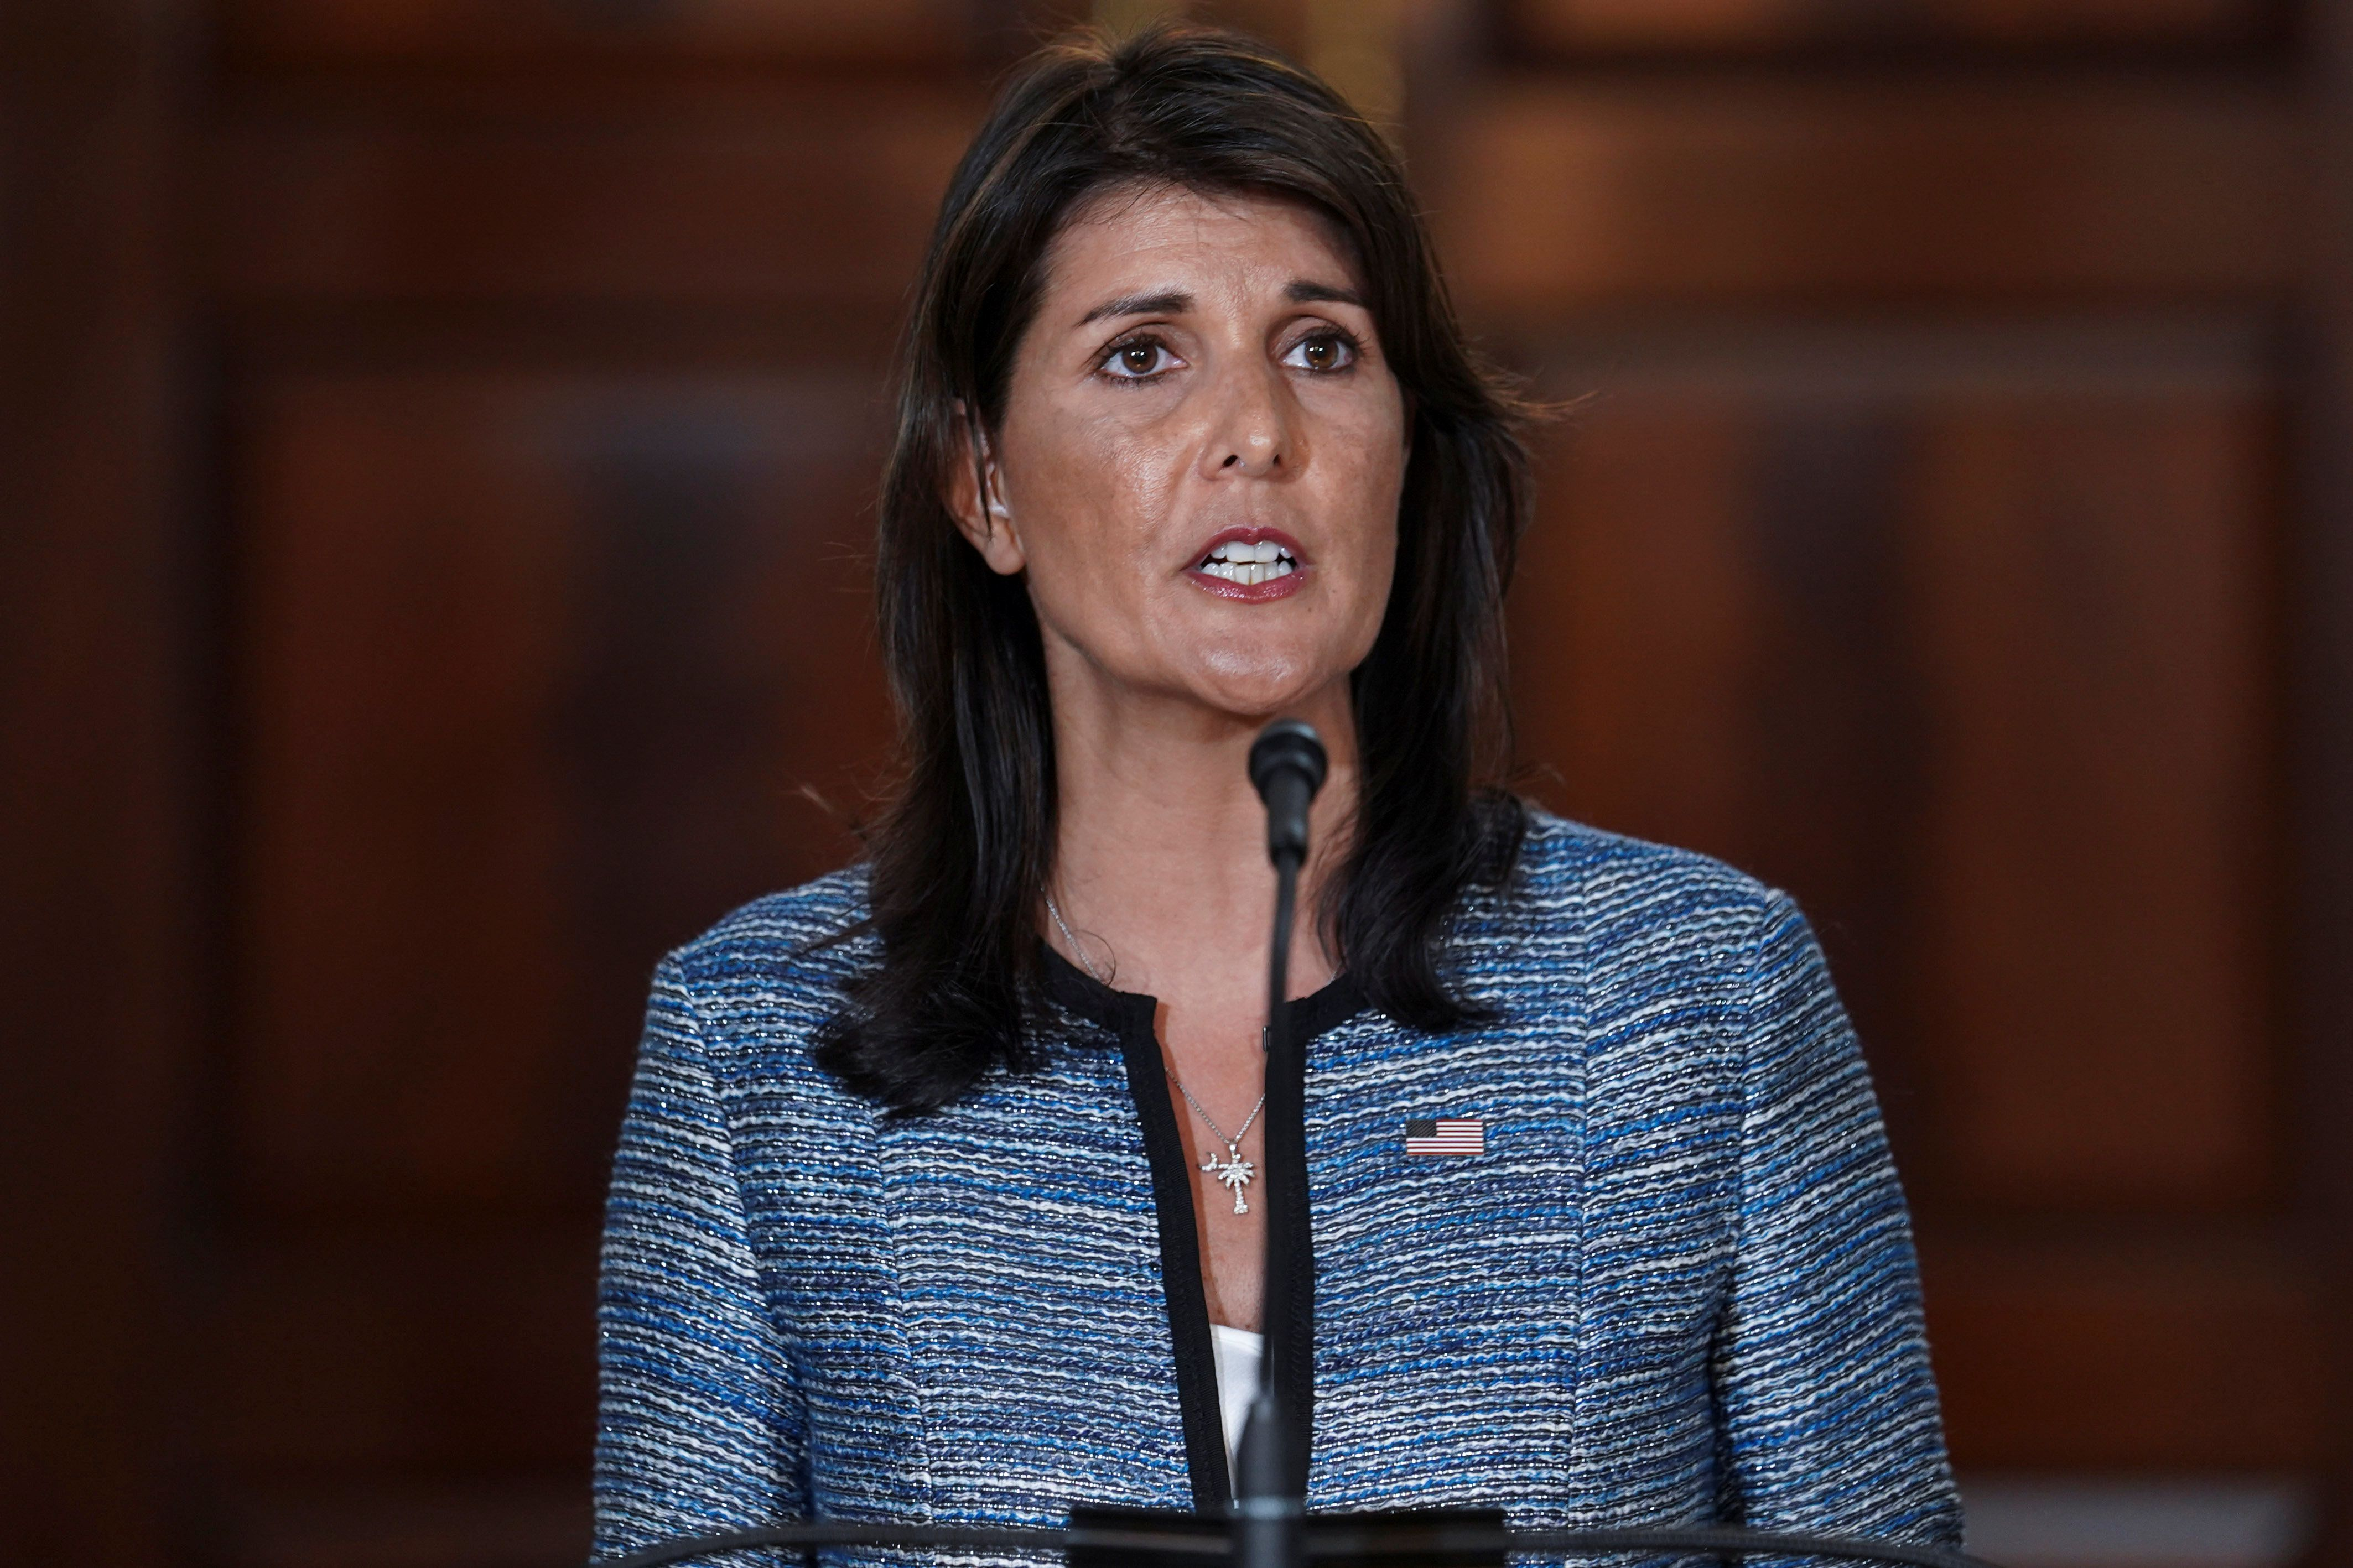 Nikki Haley: It's 'Patently Ridiculous' For UN To Look Into U.S. Poverty